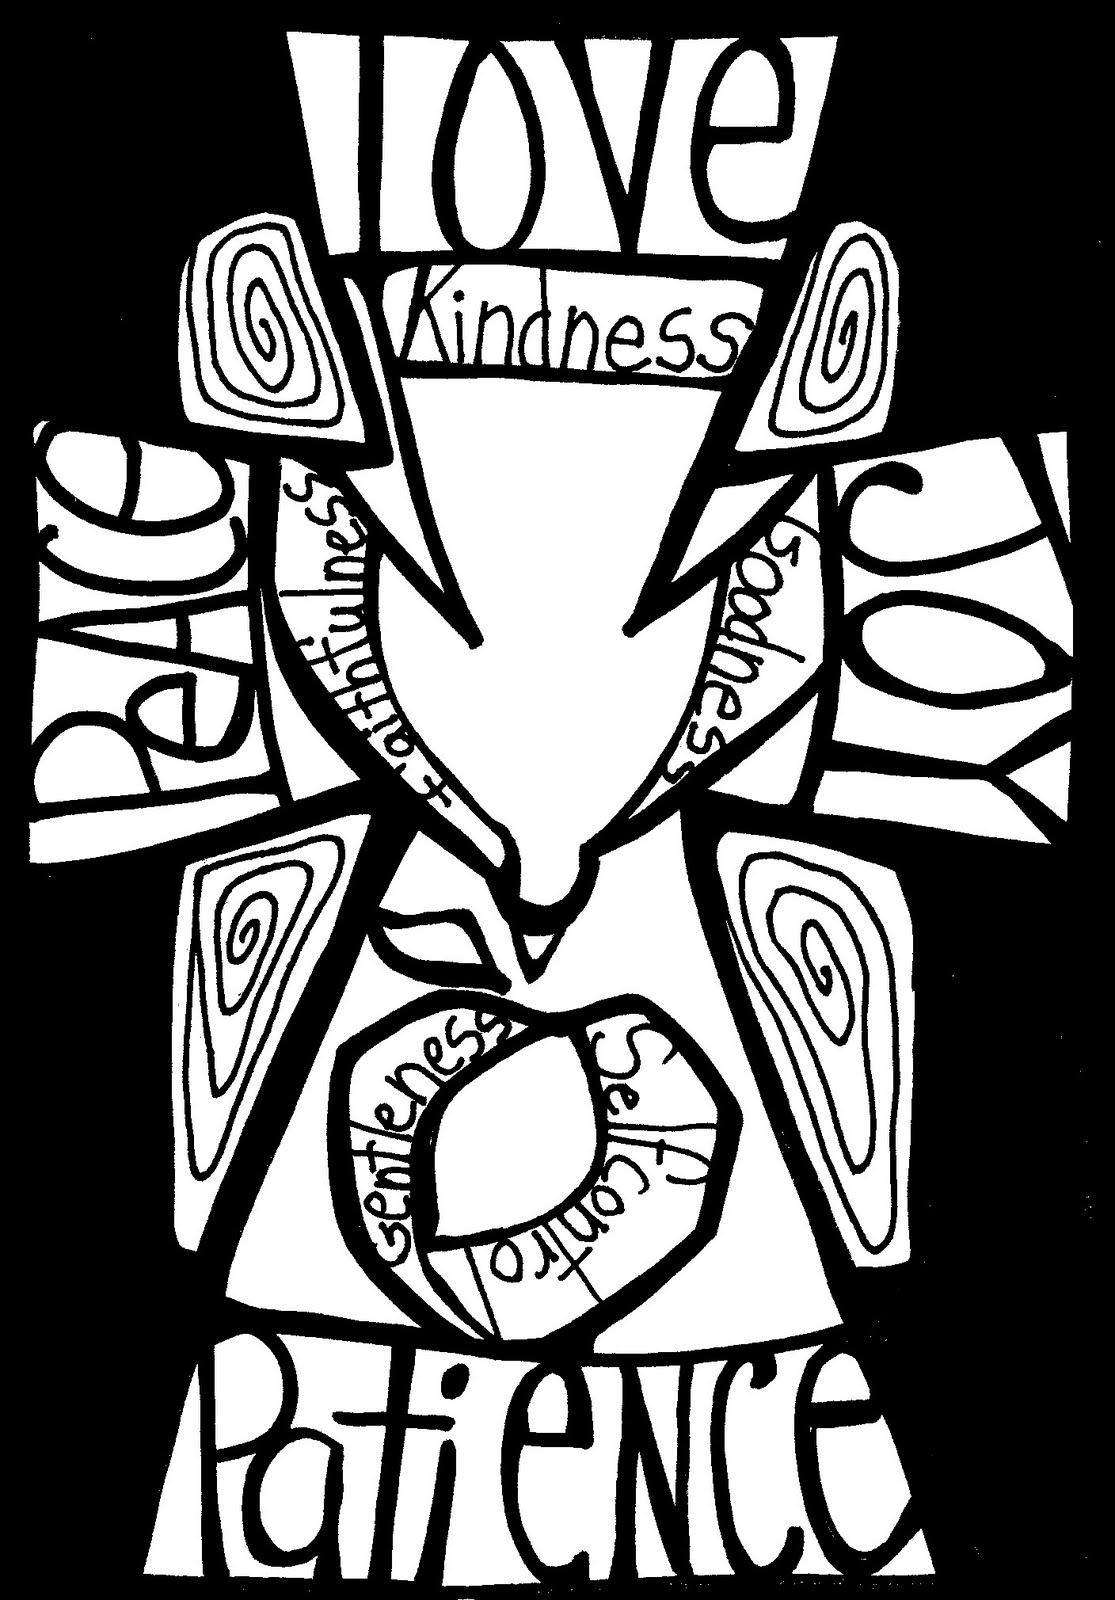 Fruit of the spirit coloring pages saferbrowser yahoo image vacation bible school fruit of the spirit this year we did a fruit of the spirit theme for vacation bible school negle Images